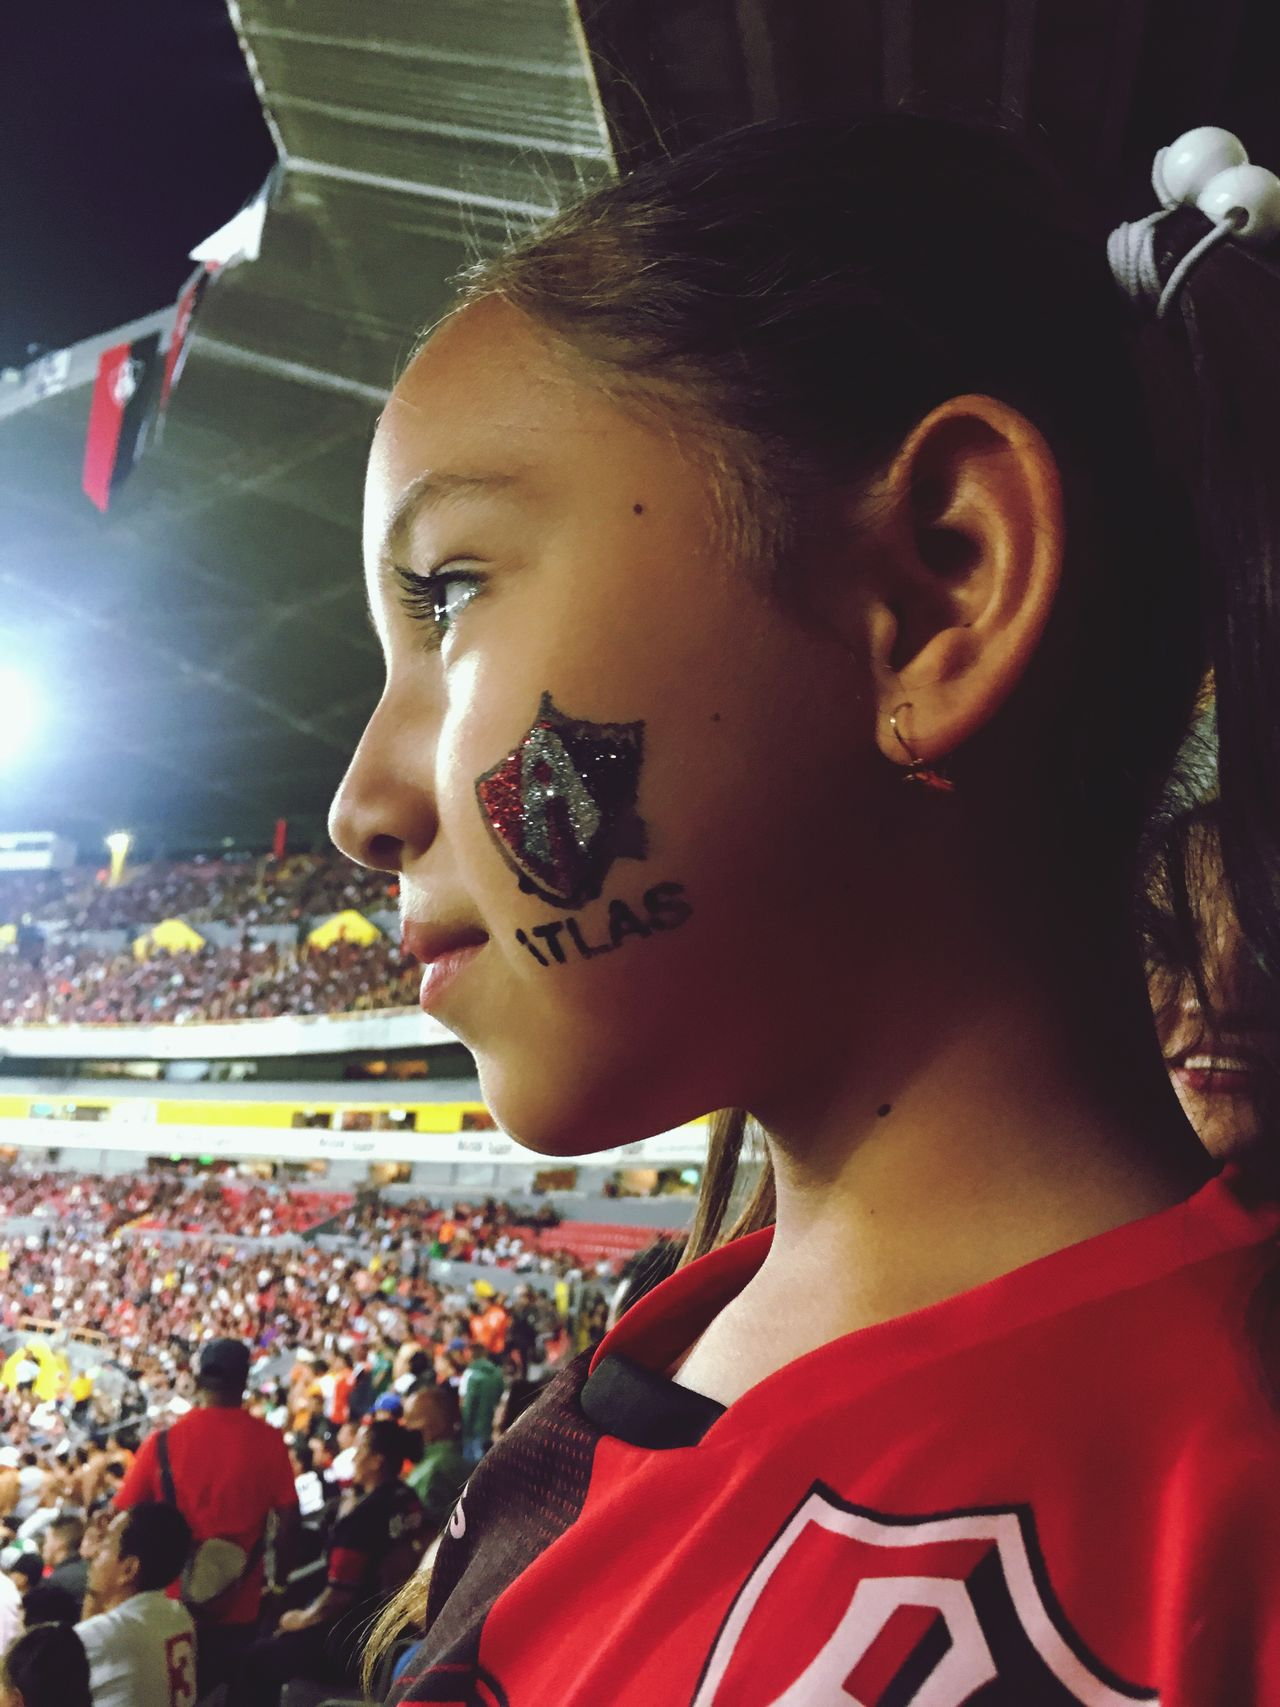 Fan - Enthusiast Arts Culture And Entertainment Leisure Activity Real People Lifestyles Crowd Stadium Night Young Women Large Group Of People Audience Outdoors People My Team Atlas Soccer Niece 💕 IPhone Disfrutando De La Vida pasión rojinegra ❤️🖤